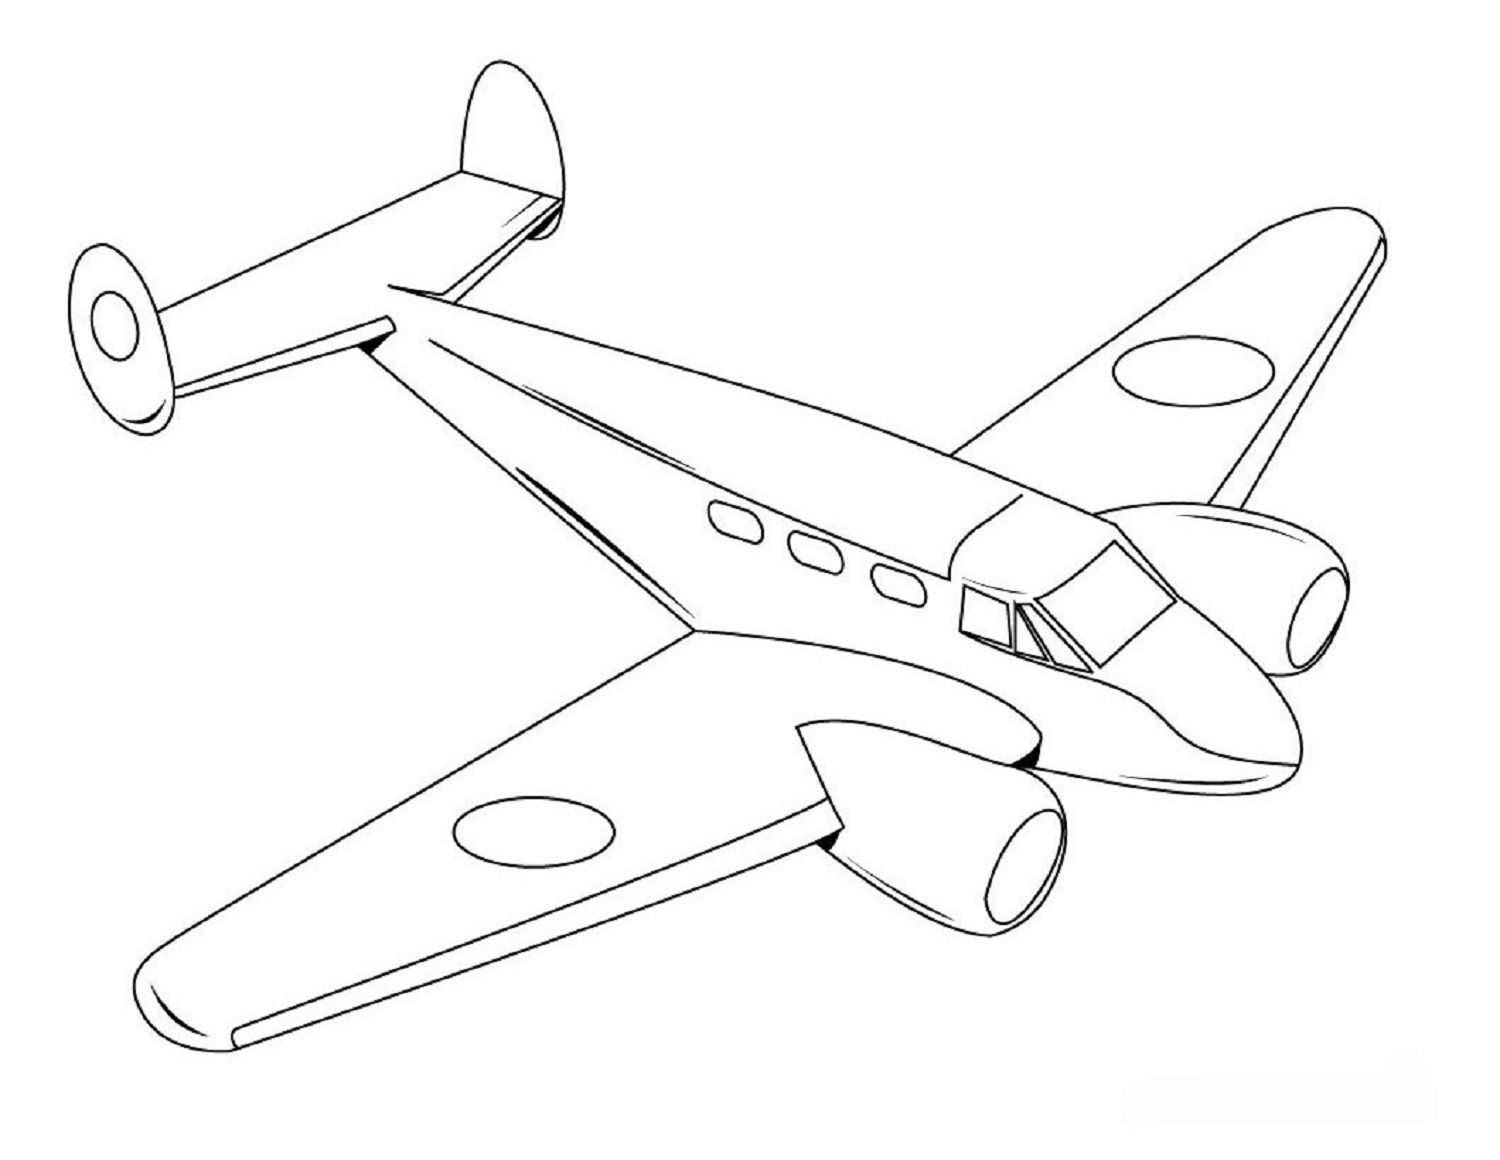 Planes Coloring Pages For Vehicle Coloring Fun Dear Joya Kids